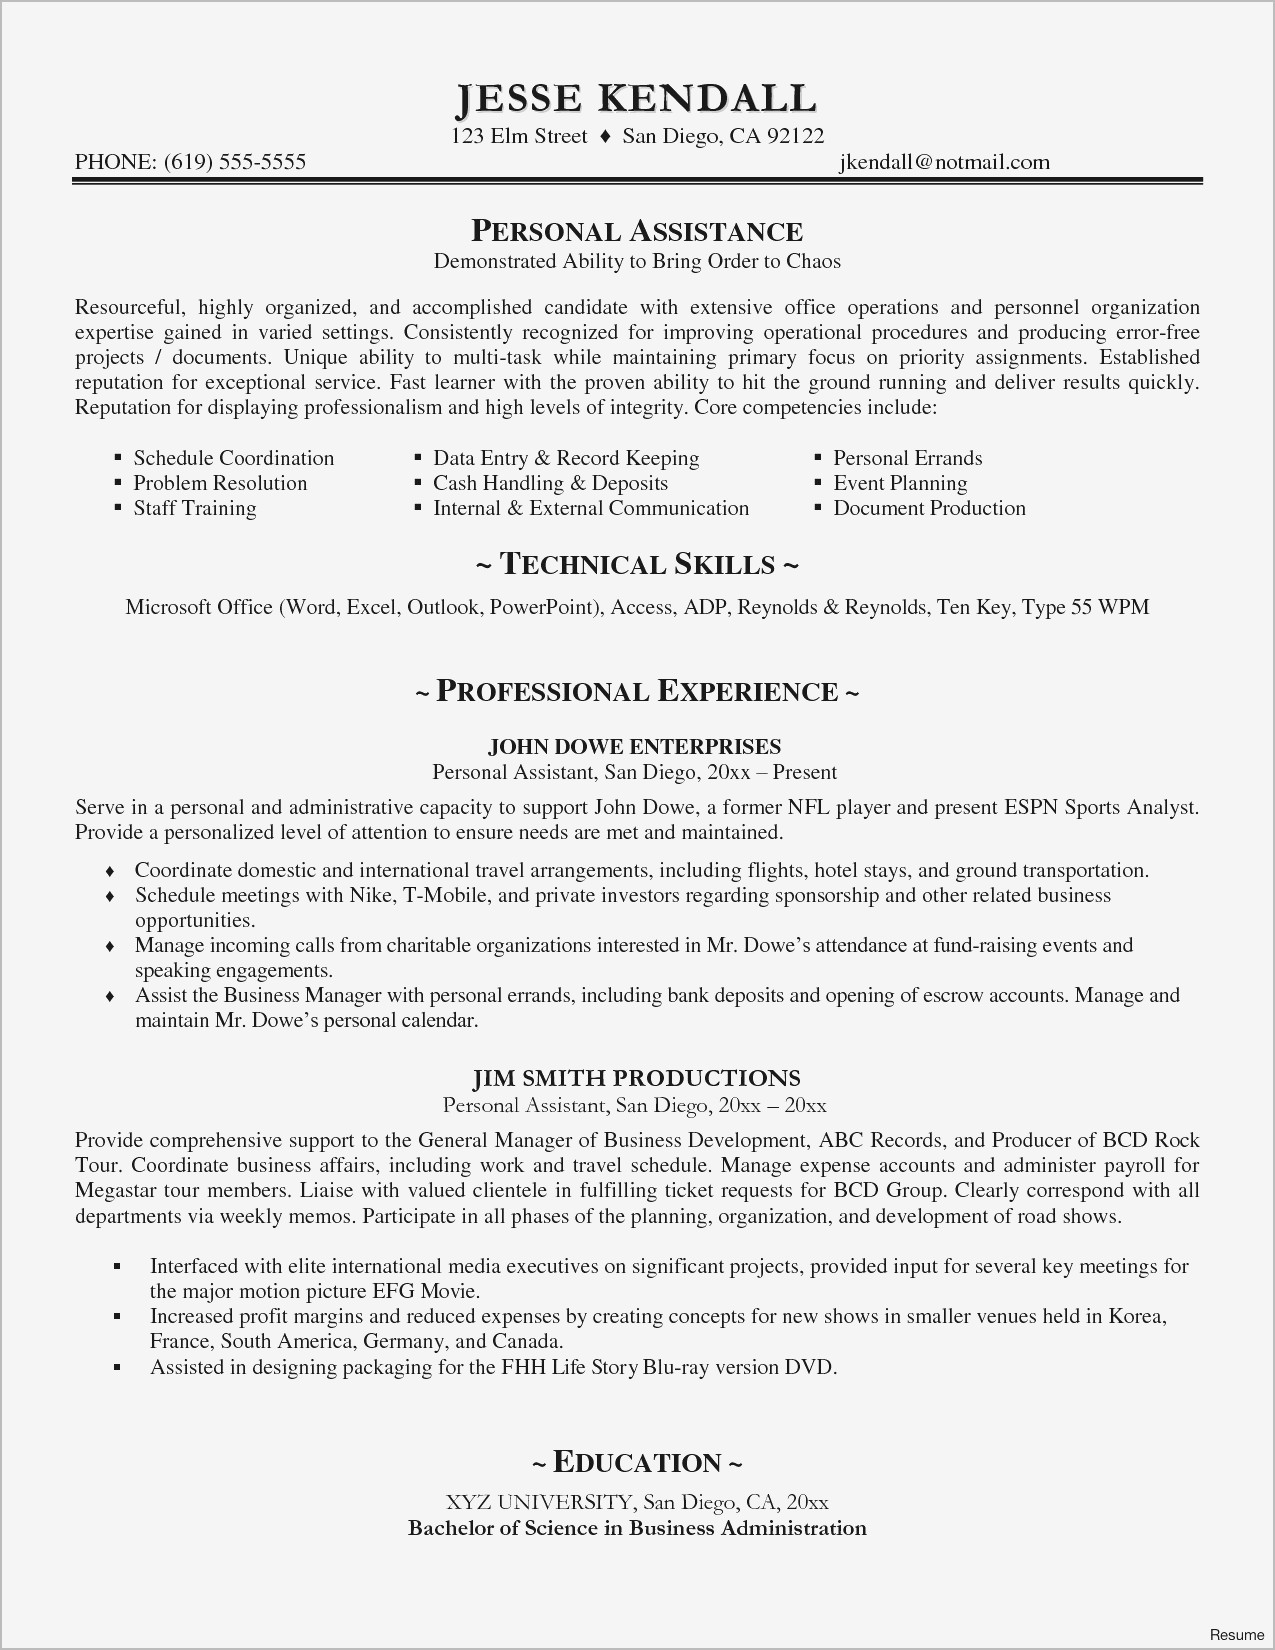 Buyer Cover Letter Template Examples  Letter Cover Templates Buyer Cover Letter Template  San Diego Resume Lovely Best Perfect Nursing  Resume Awesome Nursing